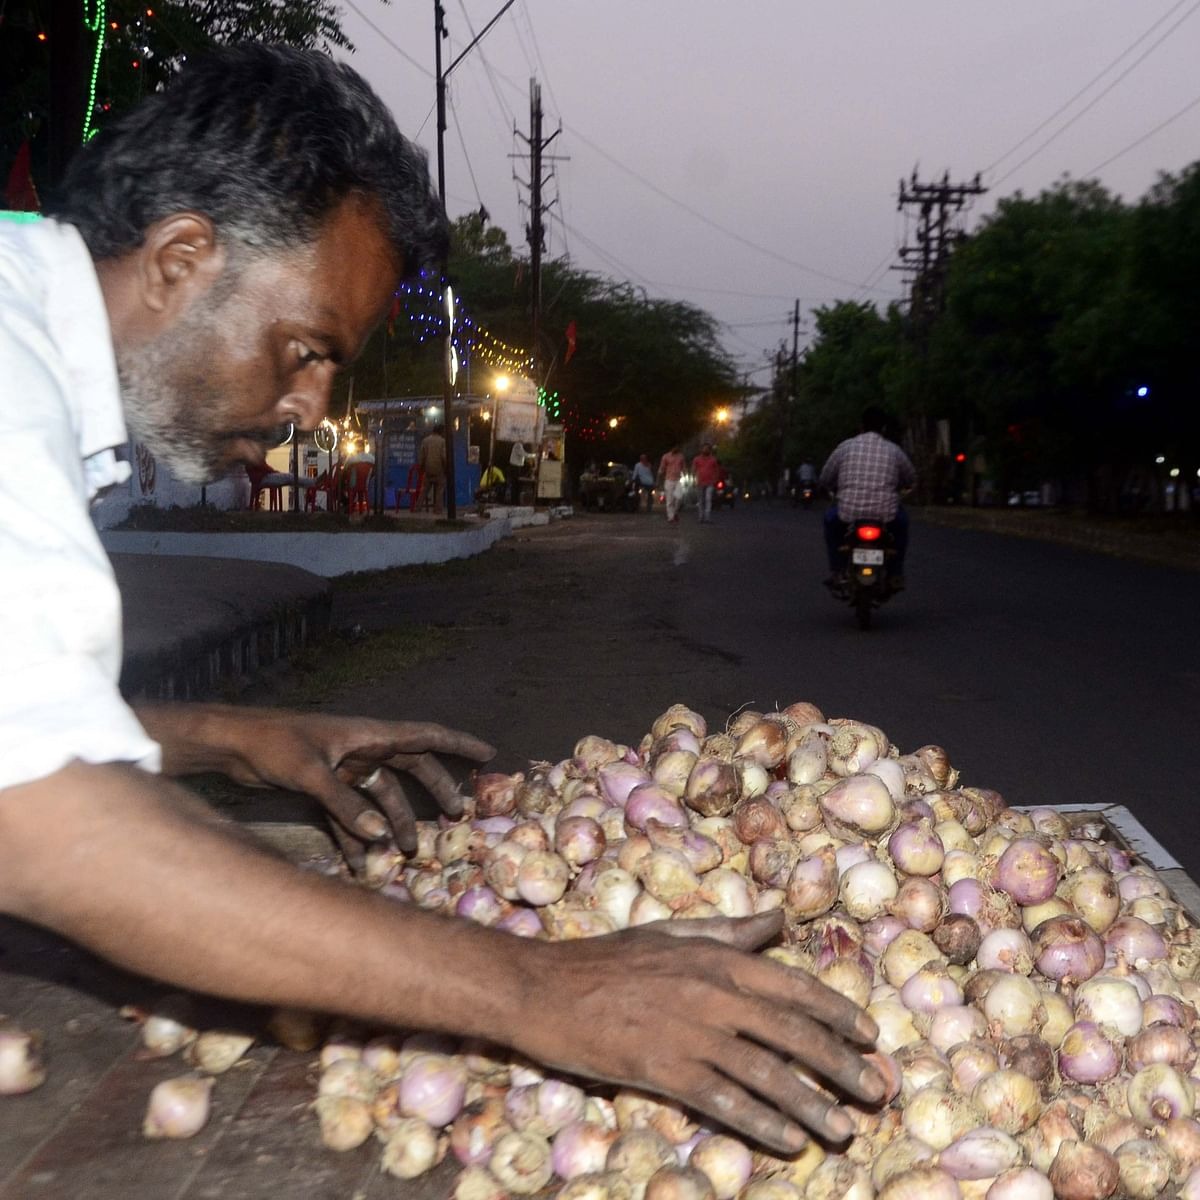 Bhopal: Amid soaring vegetable price, administration keep eye on onions